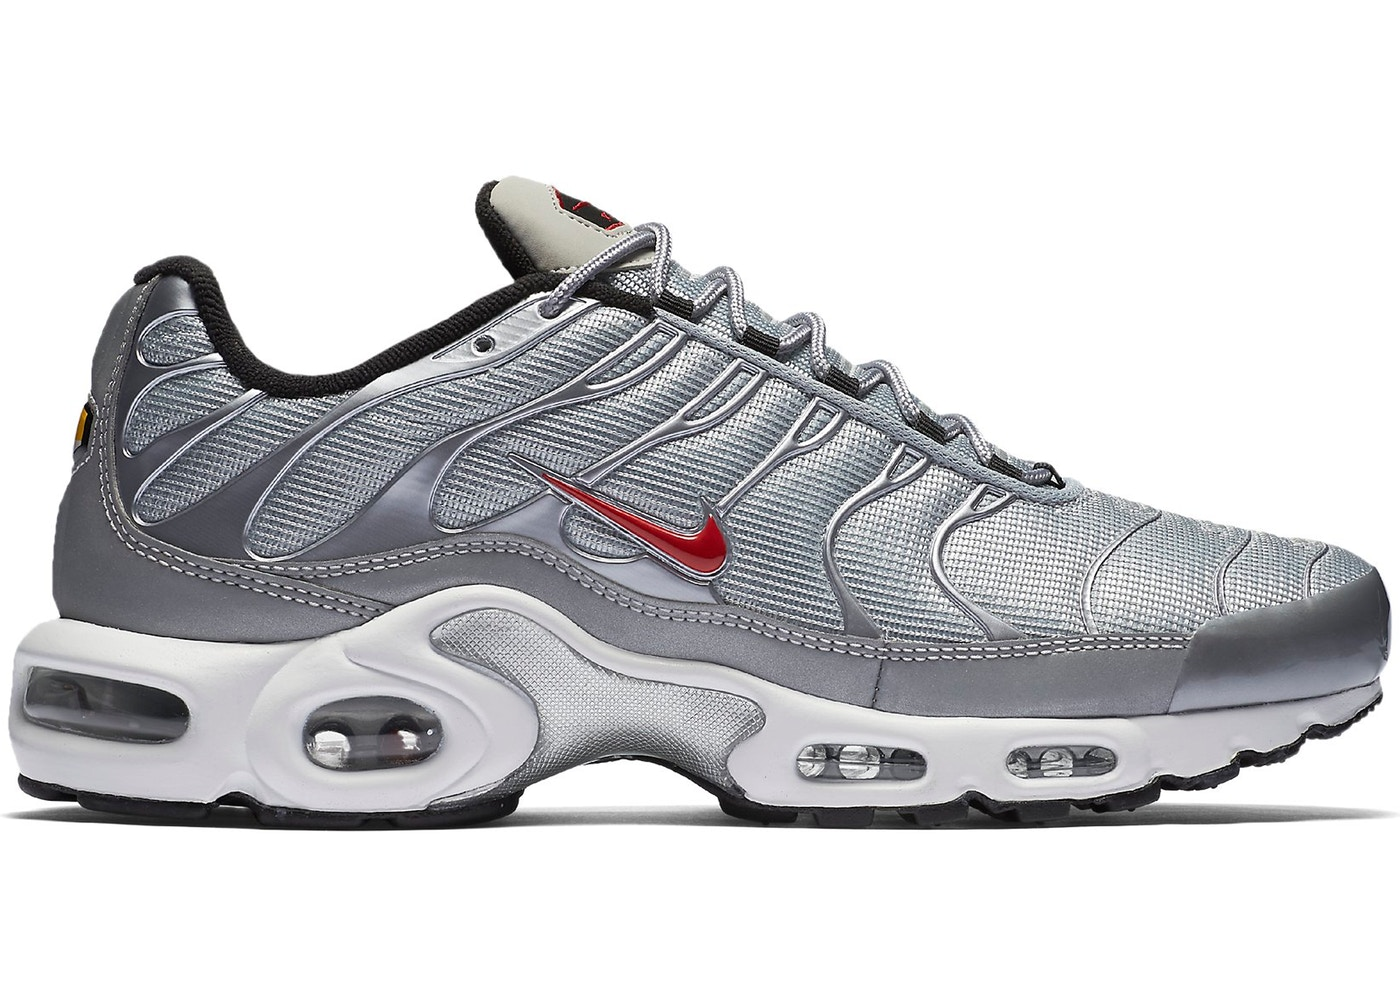 f34000c2fae3 Air Max Plus Silver Bullet - 903827-001